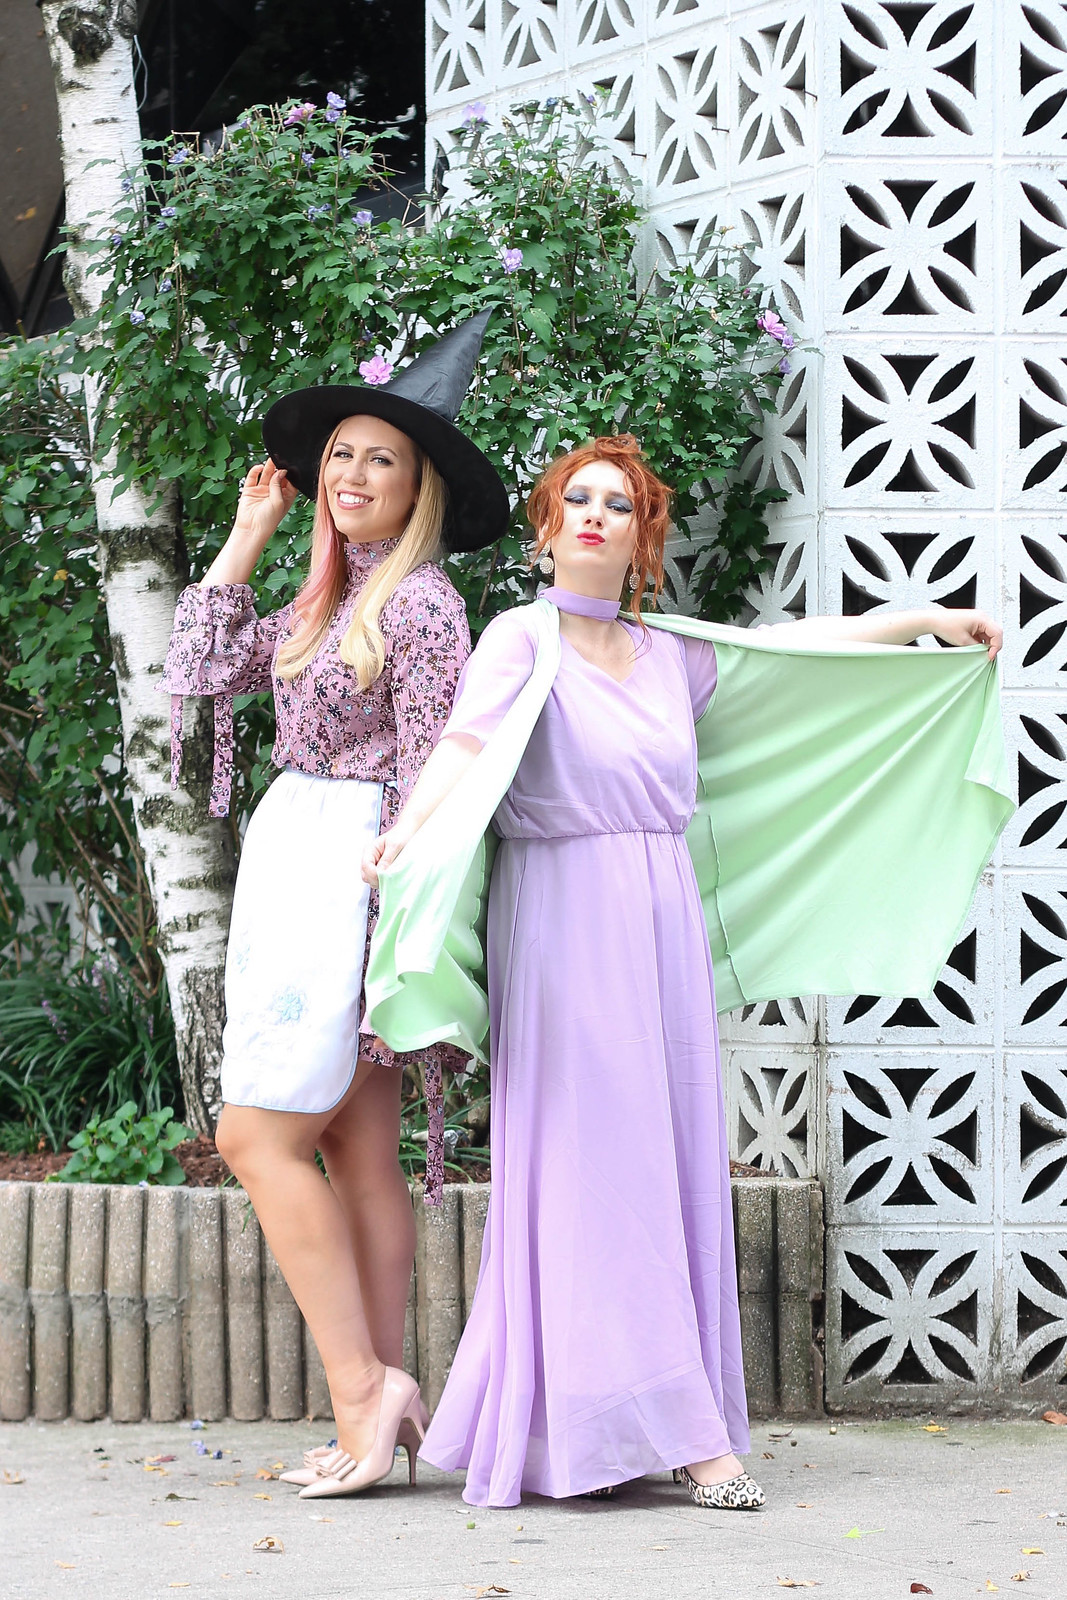 Samantha Bewitched Endora Halloween Costume Ideas Retro Modest Costumes